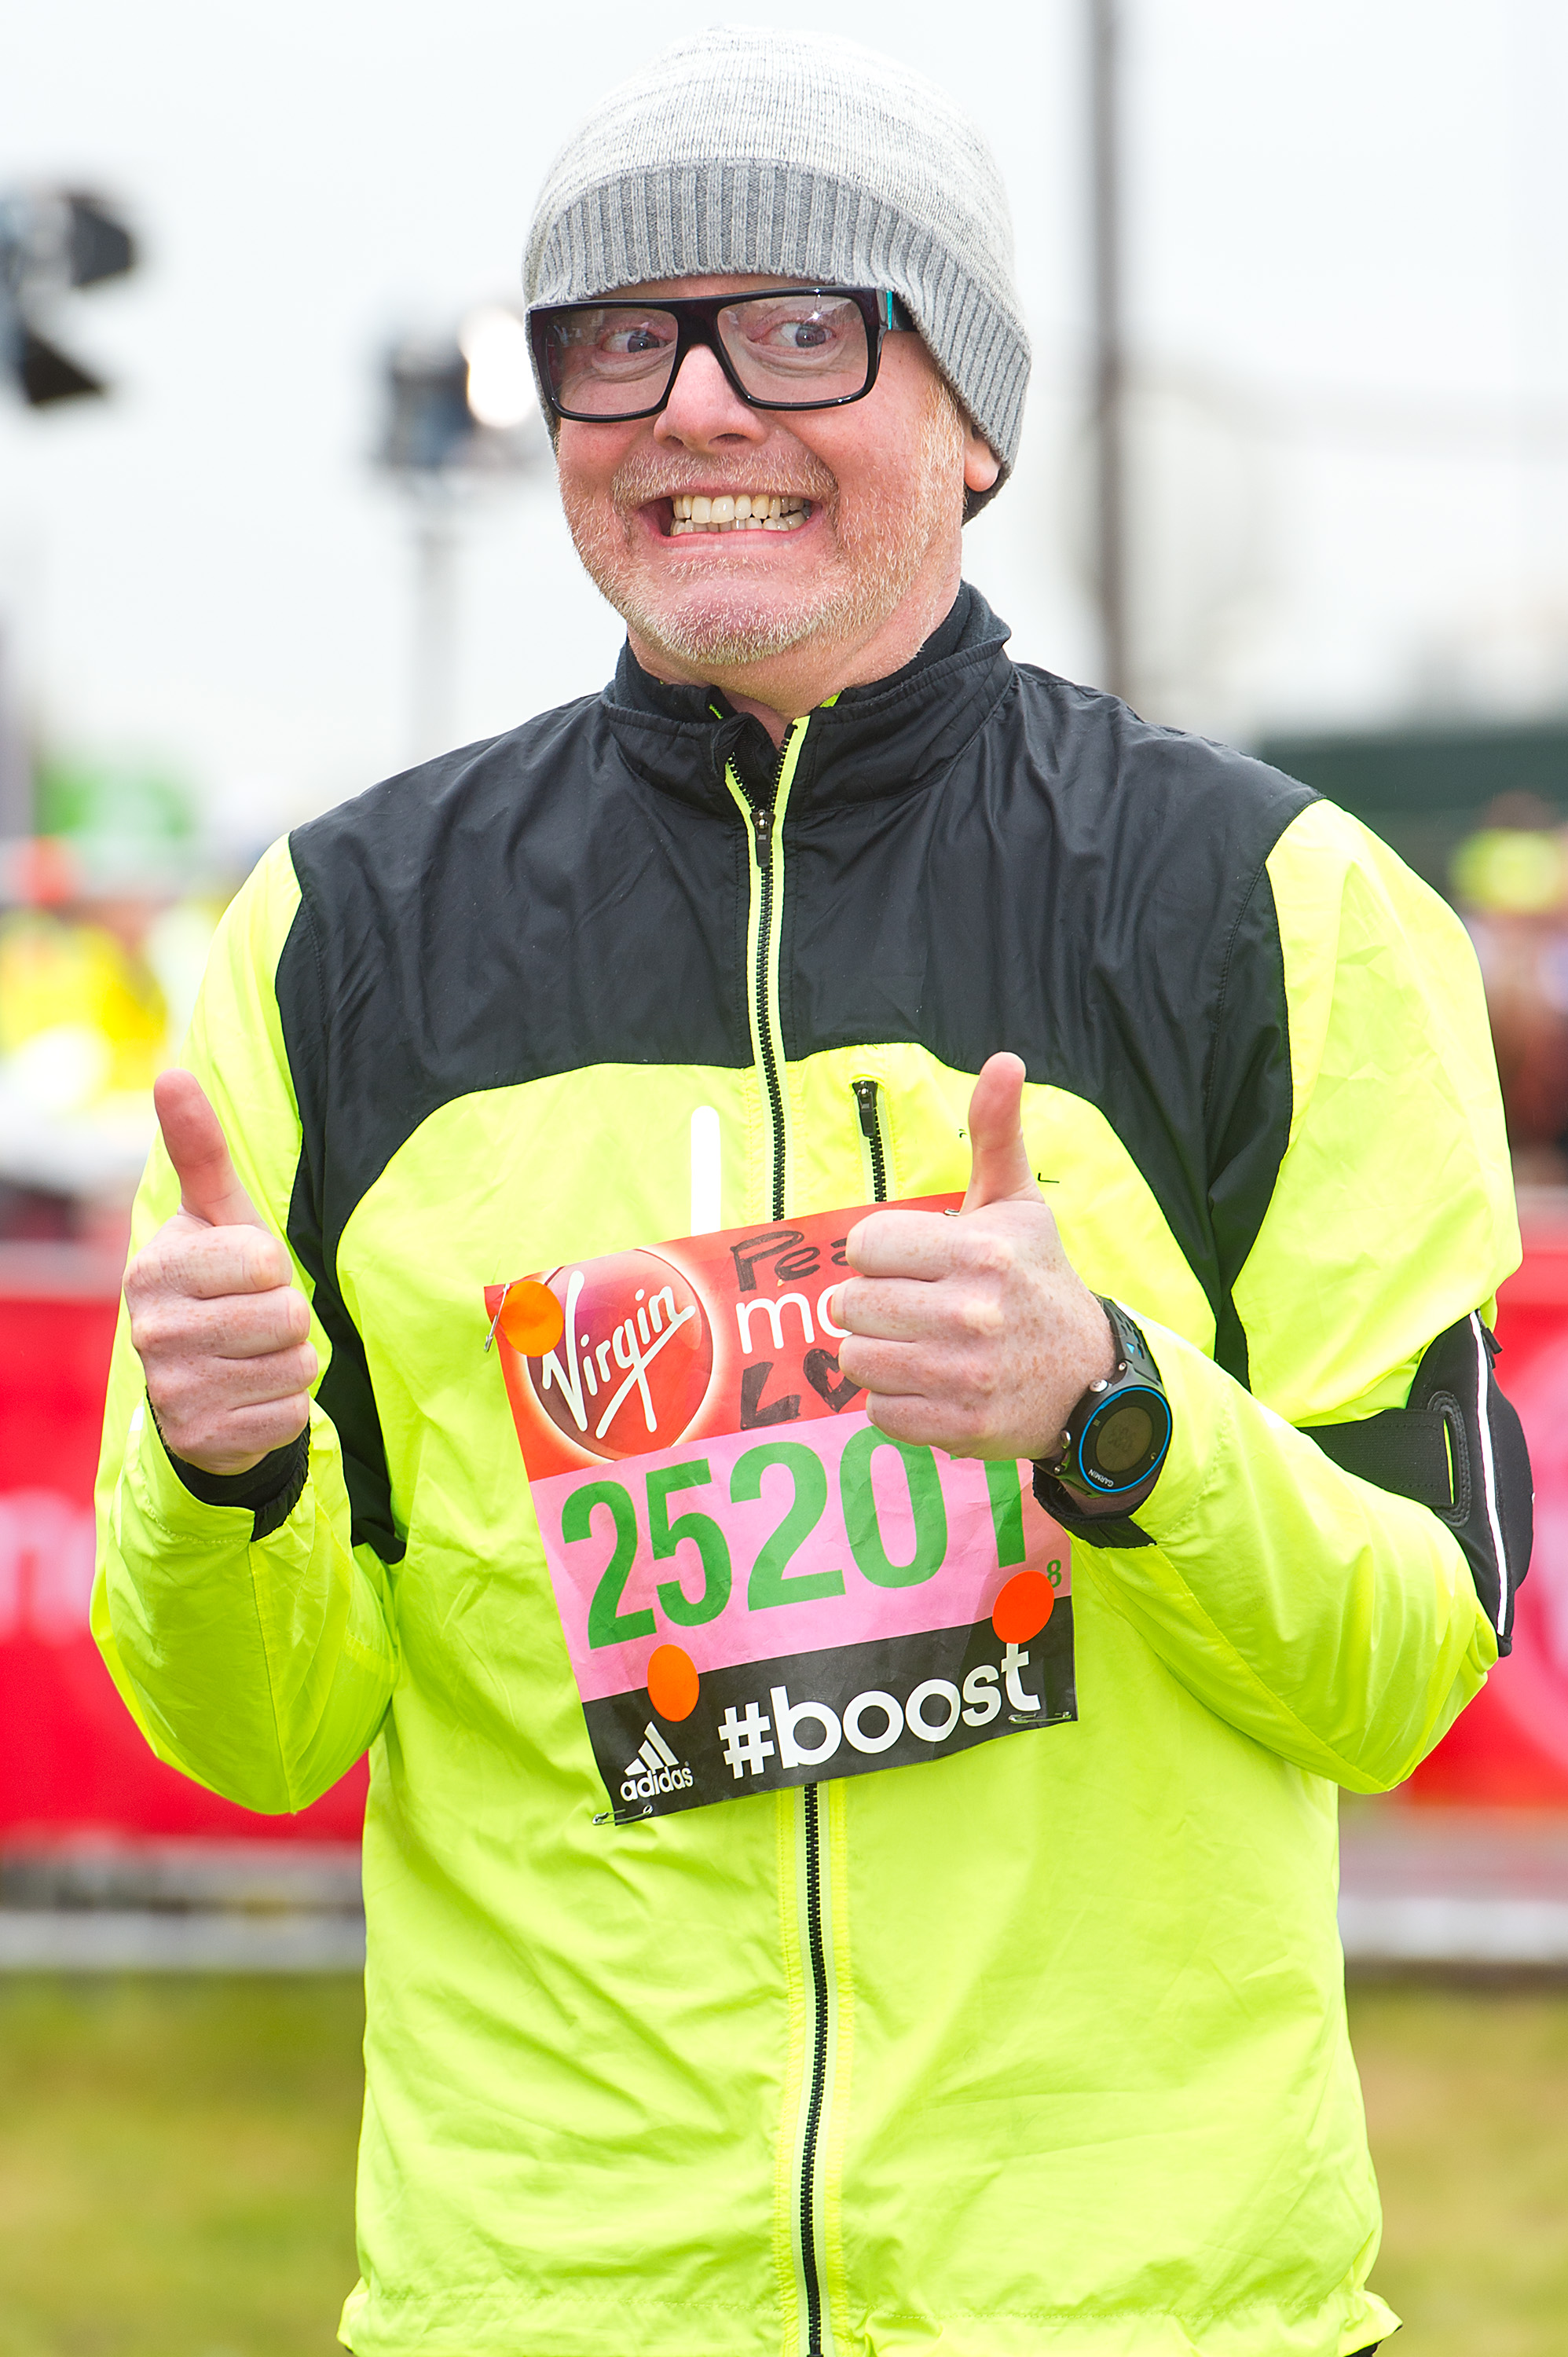 LONDON, ENGLAND - APRIL 26: Chris Evans poses for photographs at the celebrity start at The London Marathon 2015 on April 26, 2015 in London, England. (Photo by Ben A. Pruchnie/Getty Images)